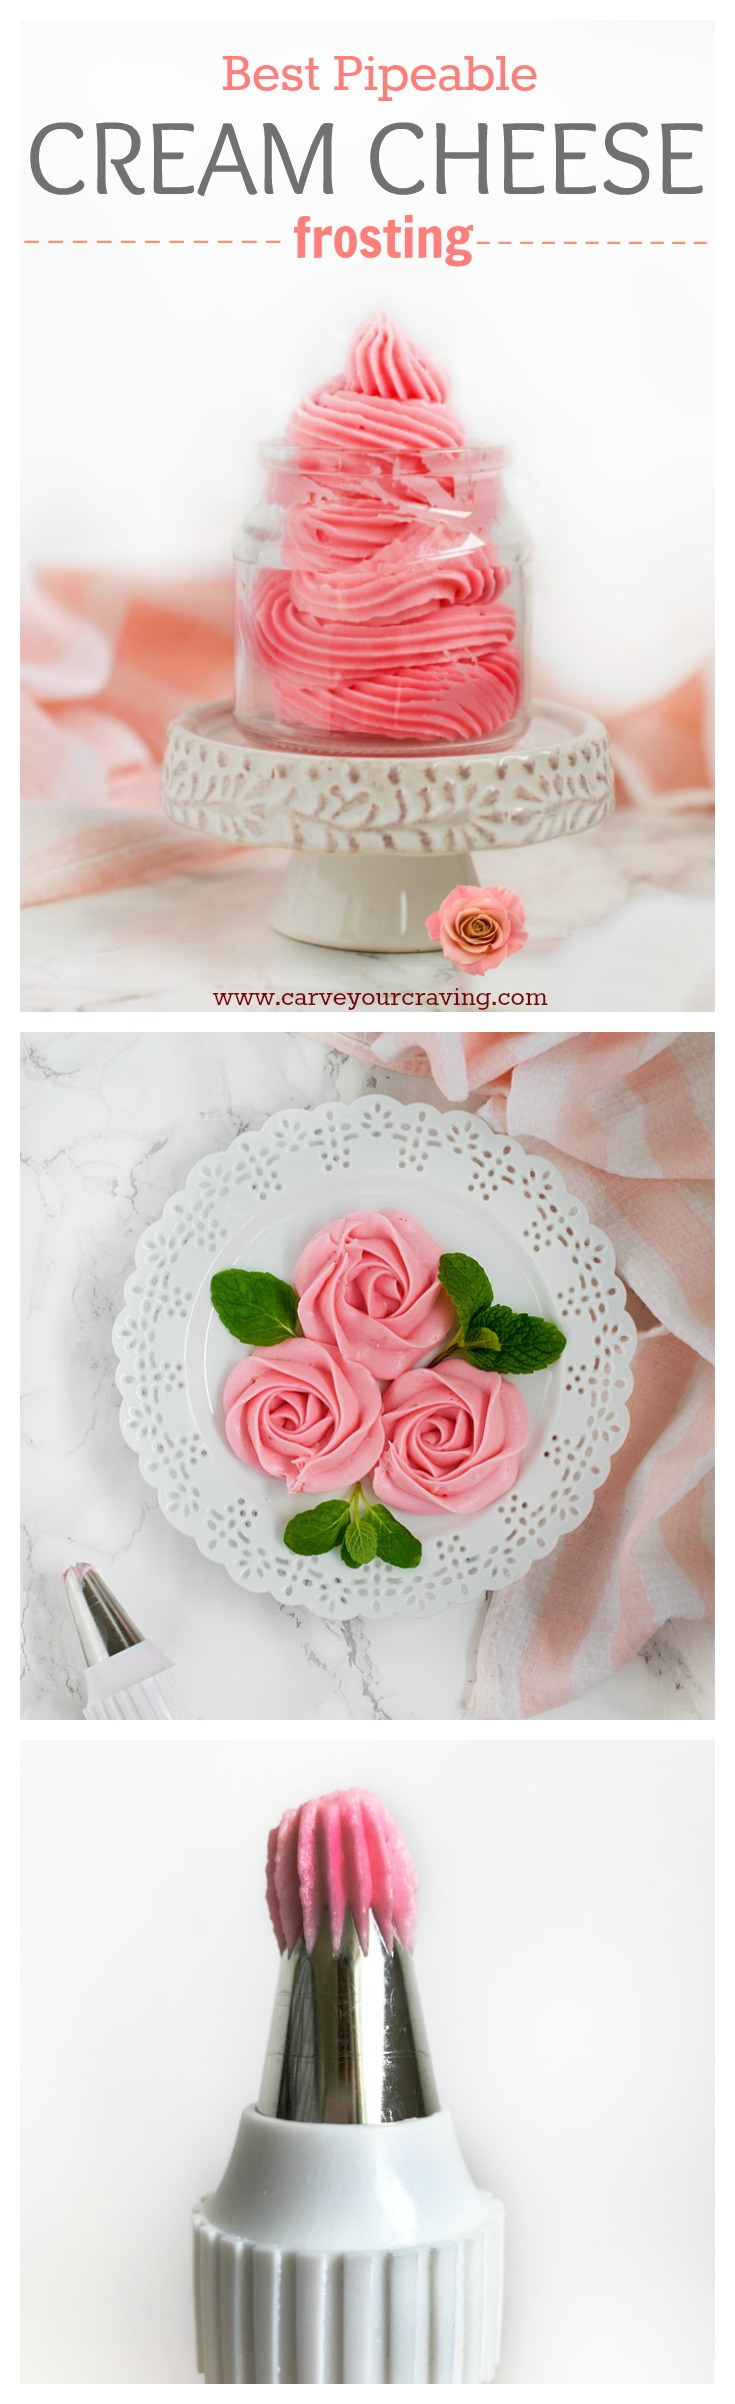 Cream cheese frosting for piping and decorating cakes/ cupcakes . Sturdy cream cheese frosting to pipe roses on cake